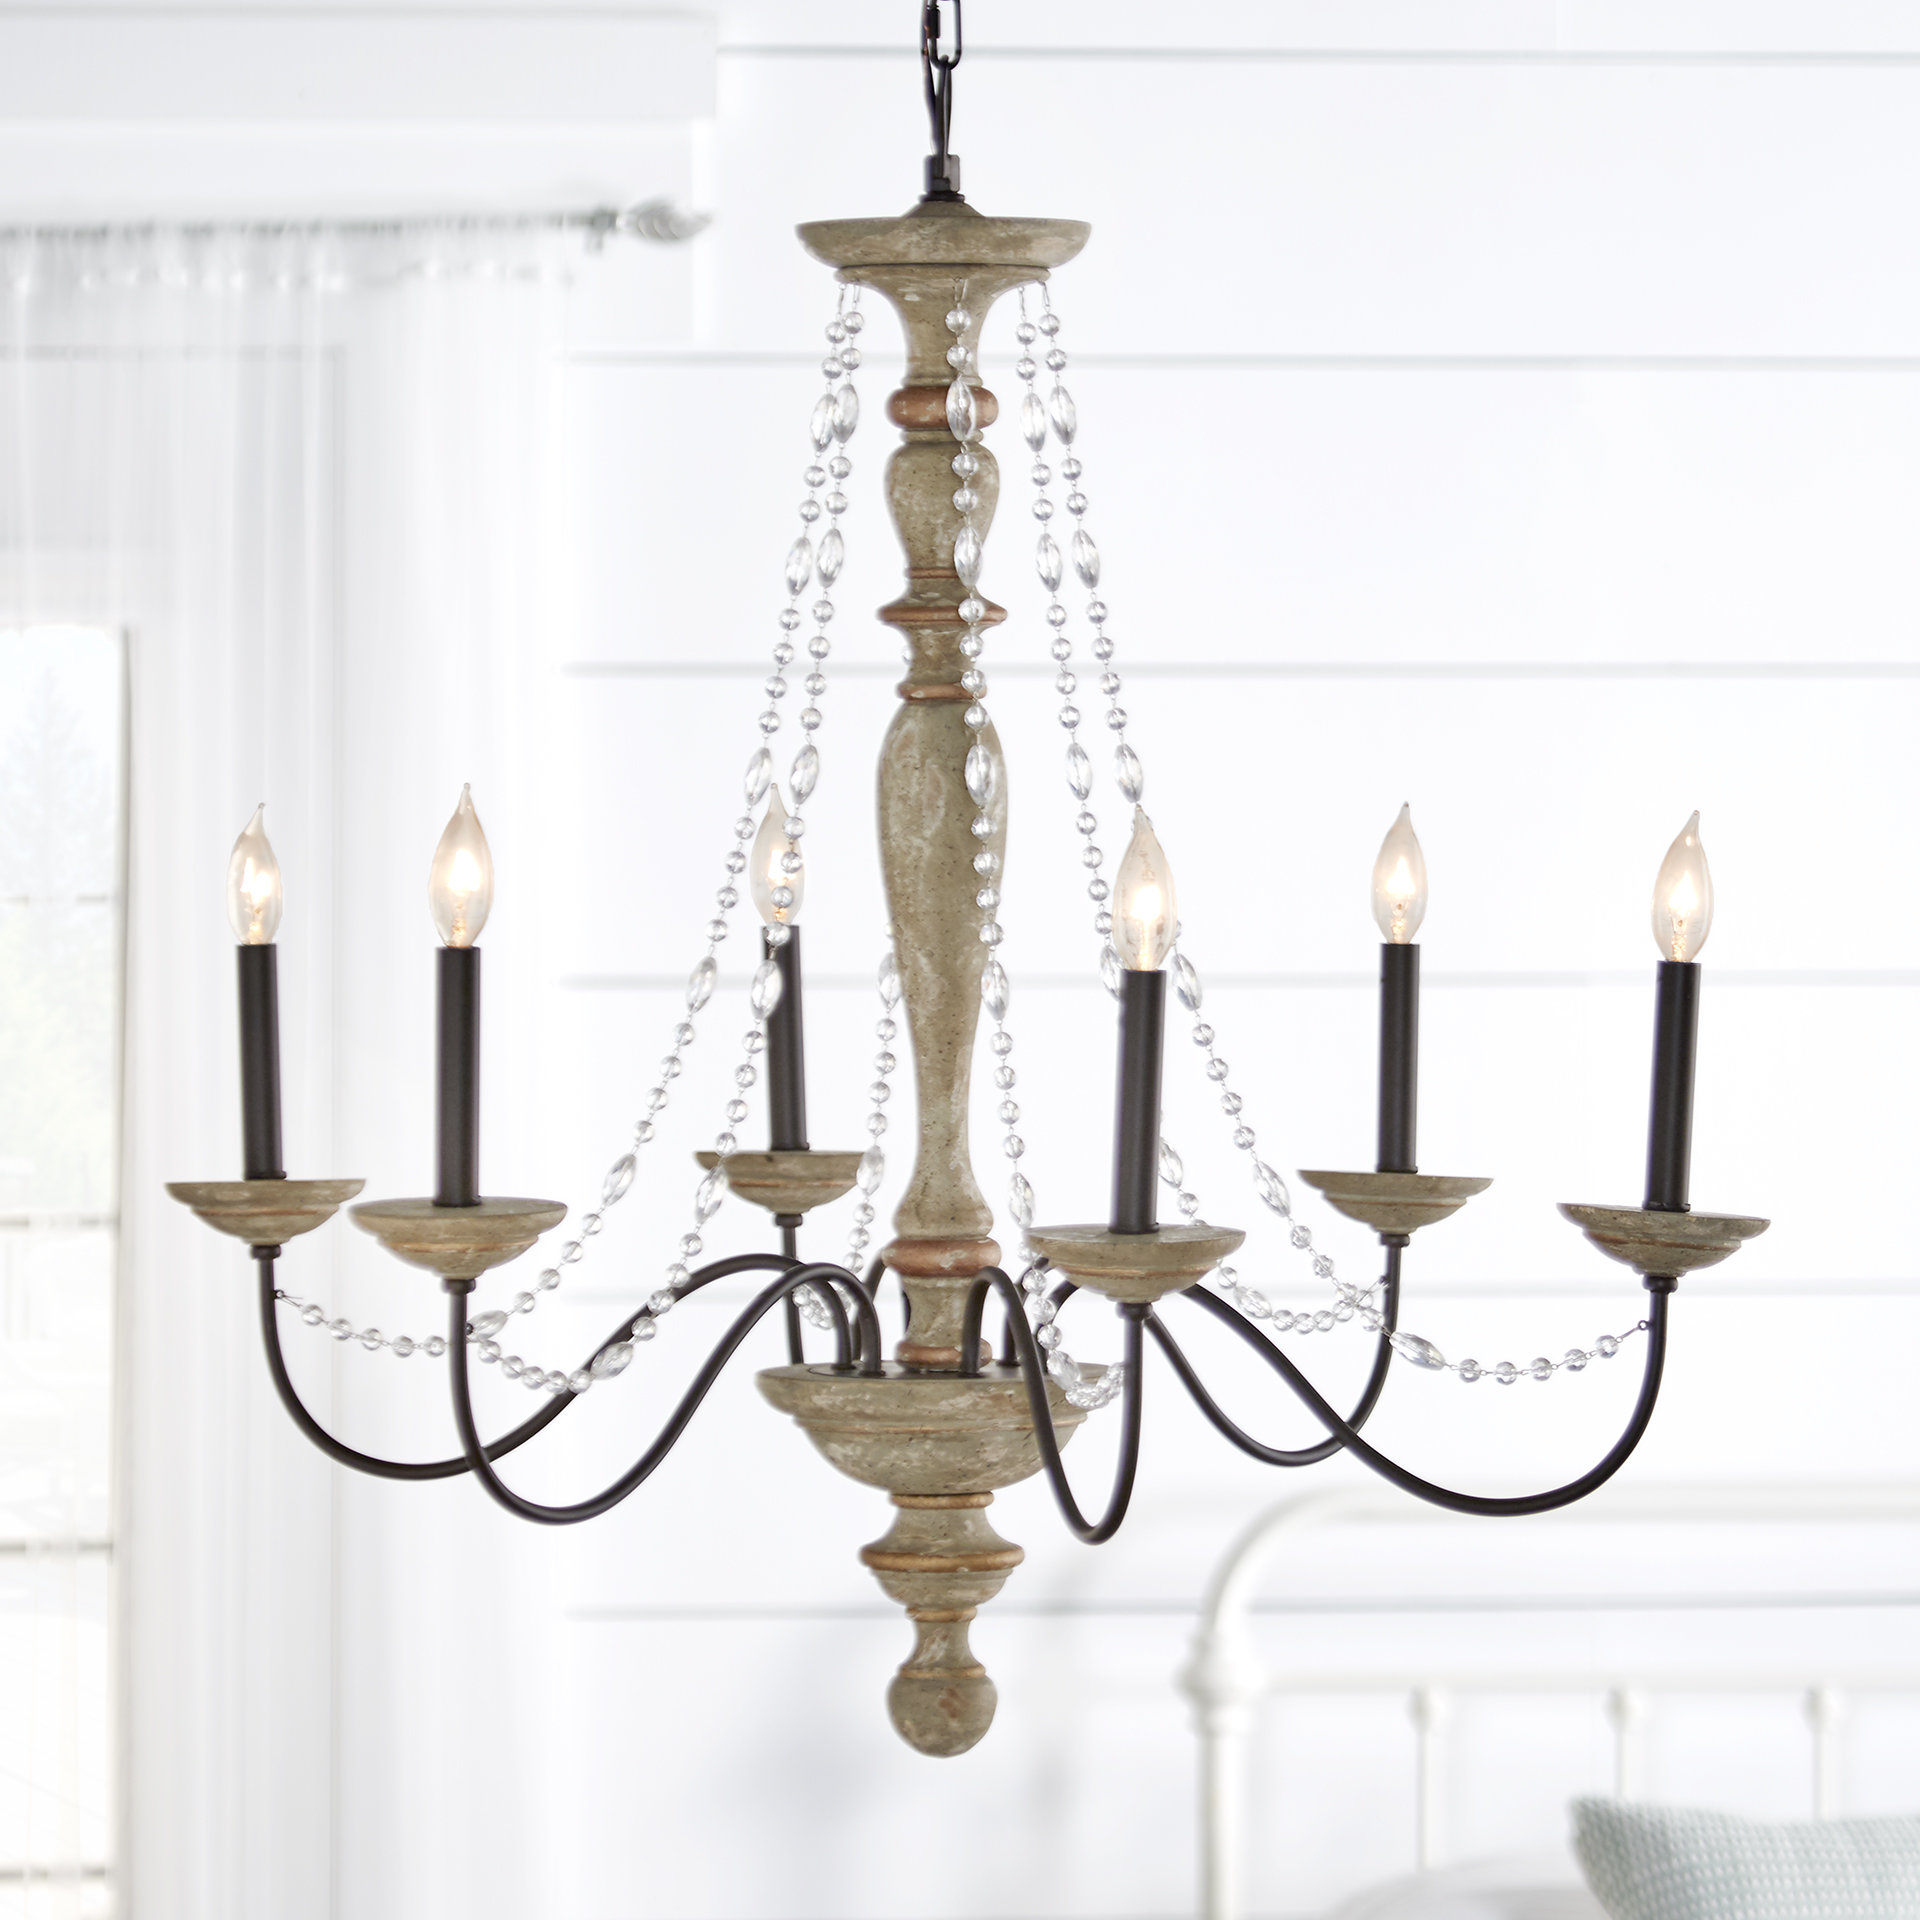 Newest Bouchette Traditional 6-Light Candle Style Chandeliers inside Three Posts Brennon 6-Light Candle Style Chandelier